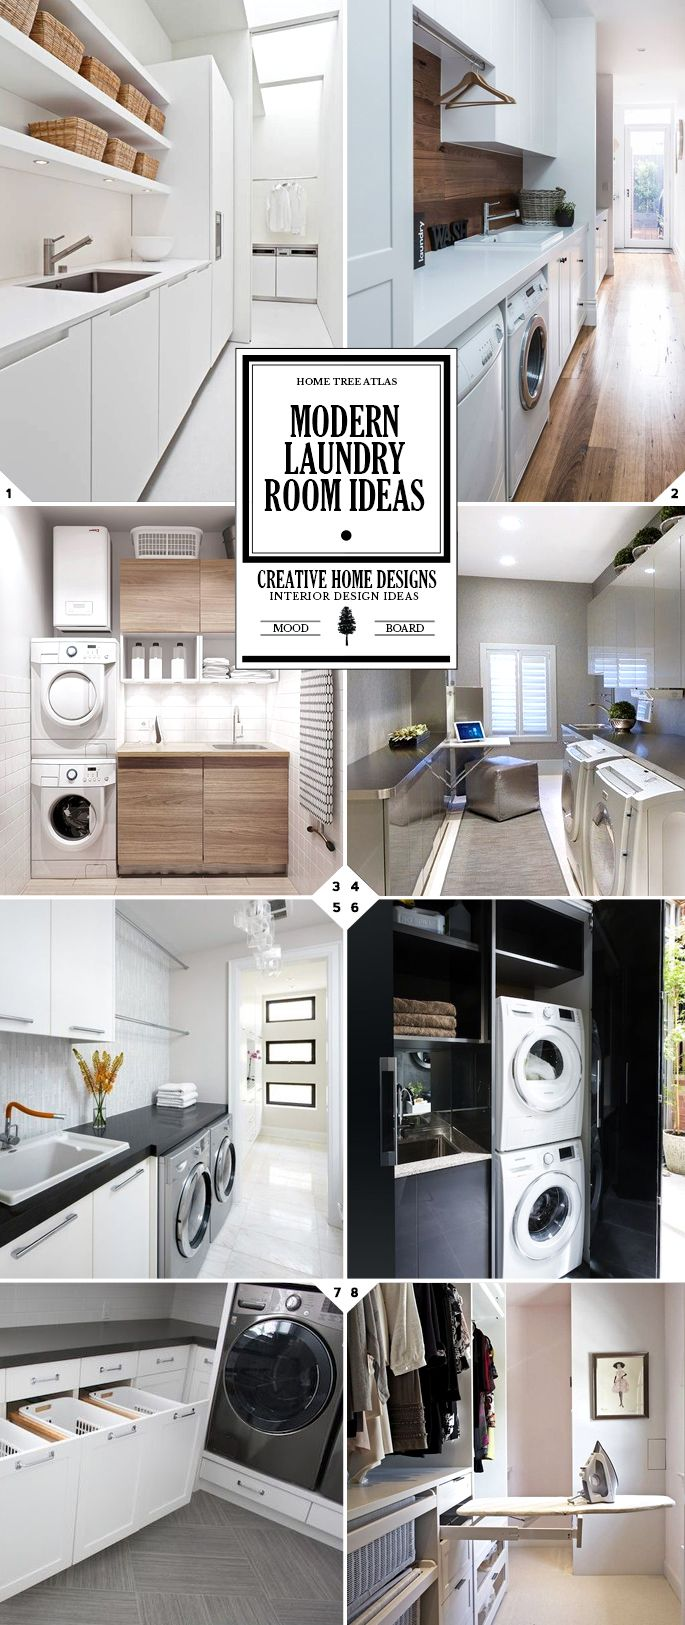 A Modern Laundry Room Is Going To Be A Clean And Fresh Looking Space, Just